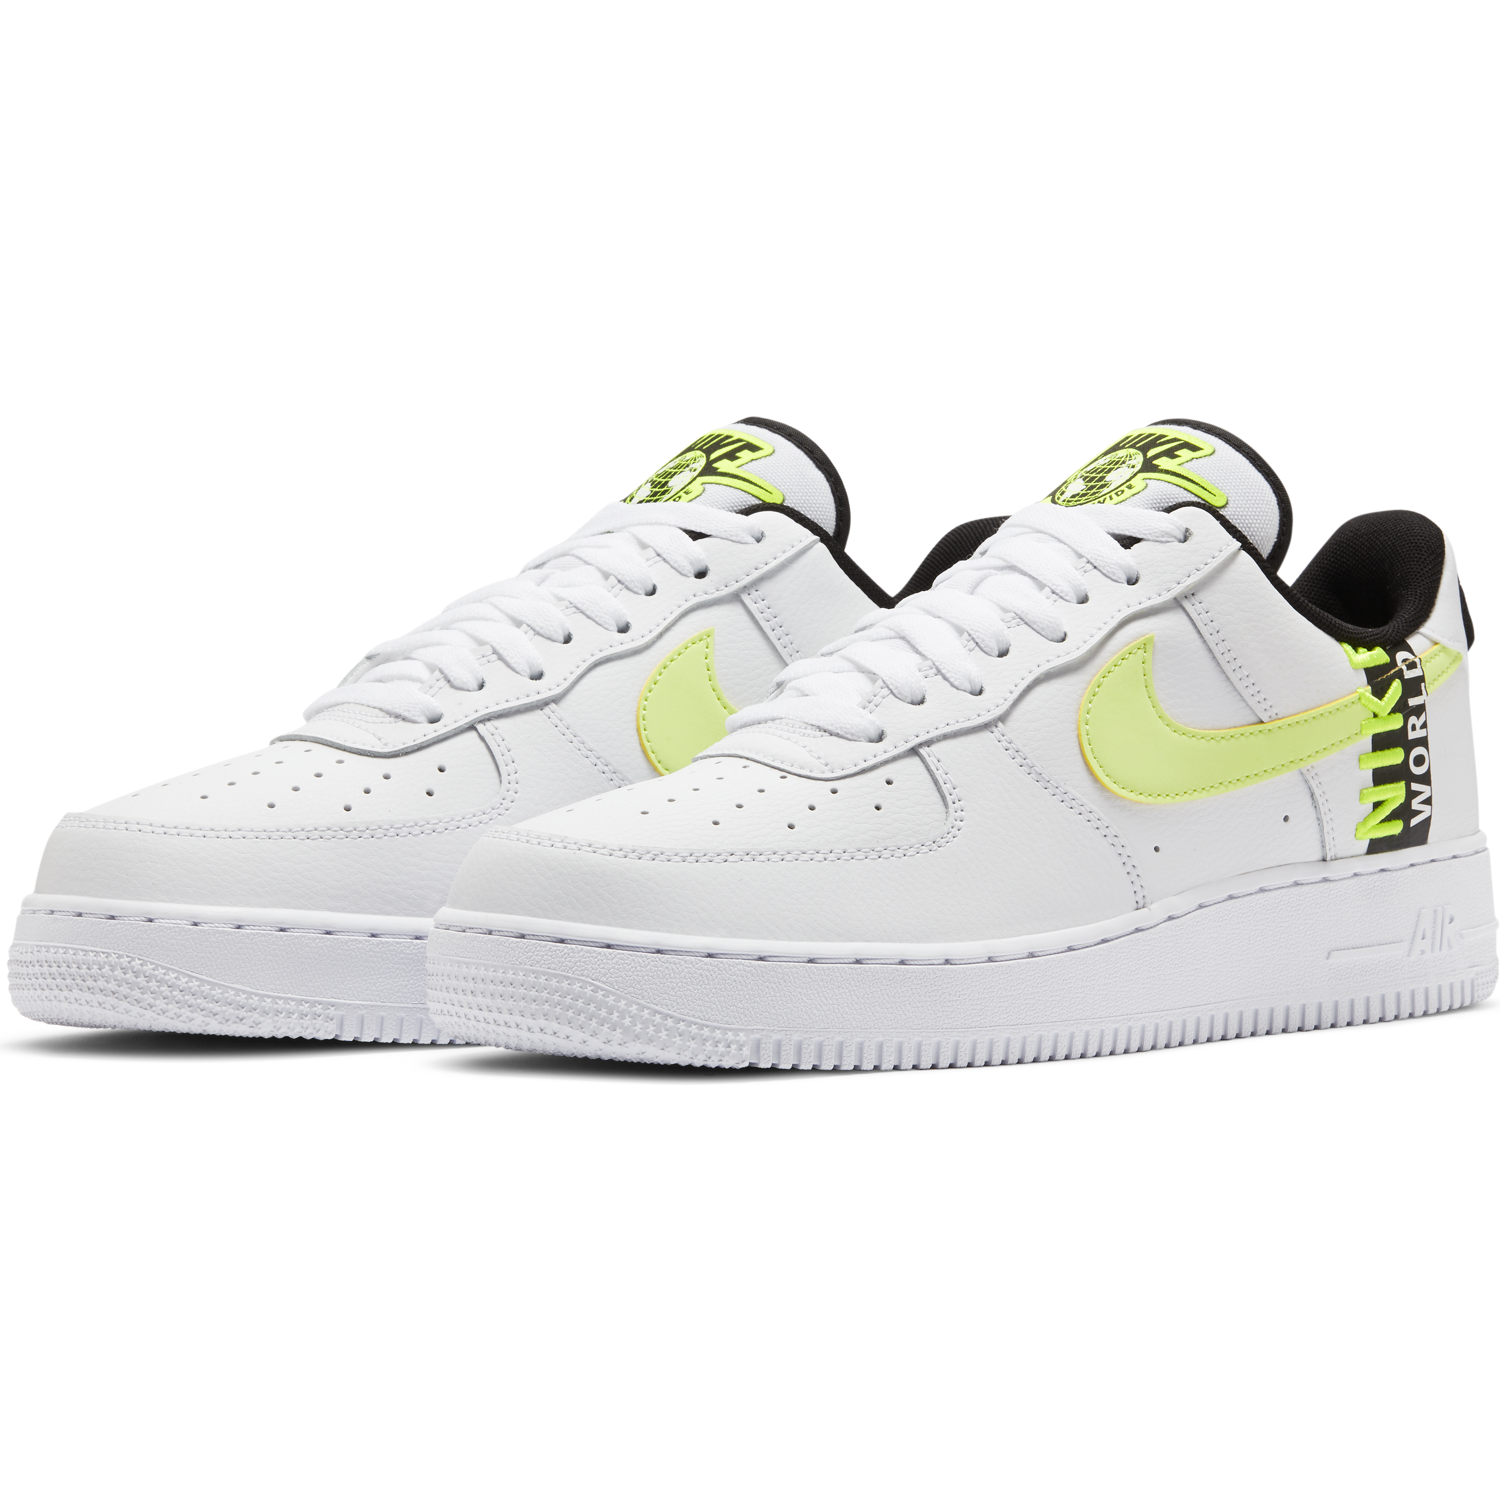 NIKE M'S FOOTWEAR AIR FORCE 1 '07 LV8 WW - WHITE/VOLT